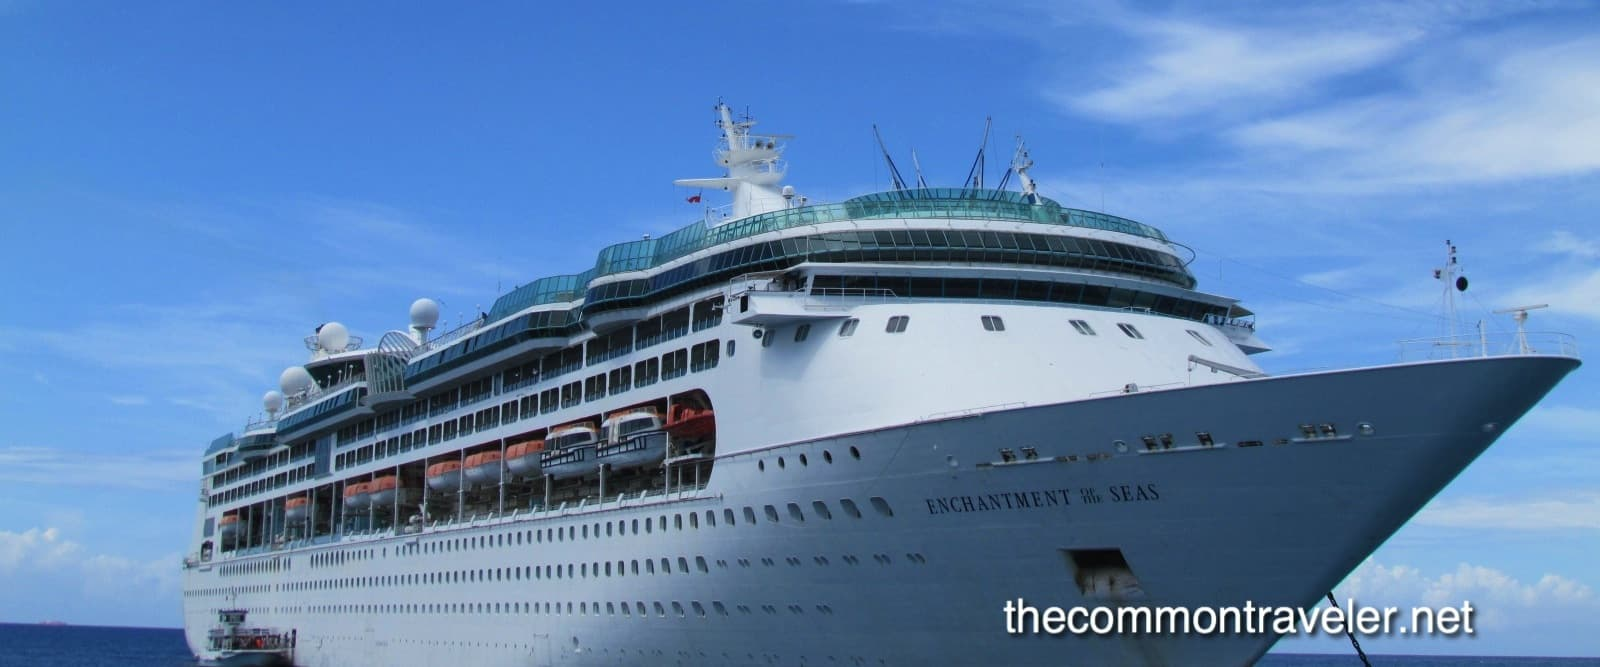 Top 5 Reasons to Go on a Reunion Cruise